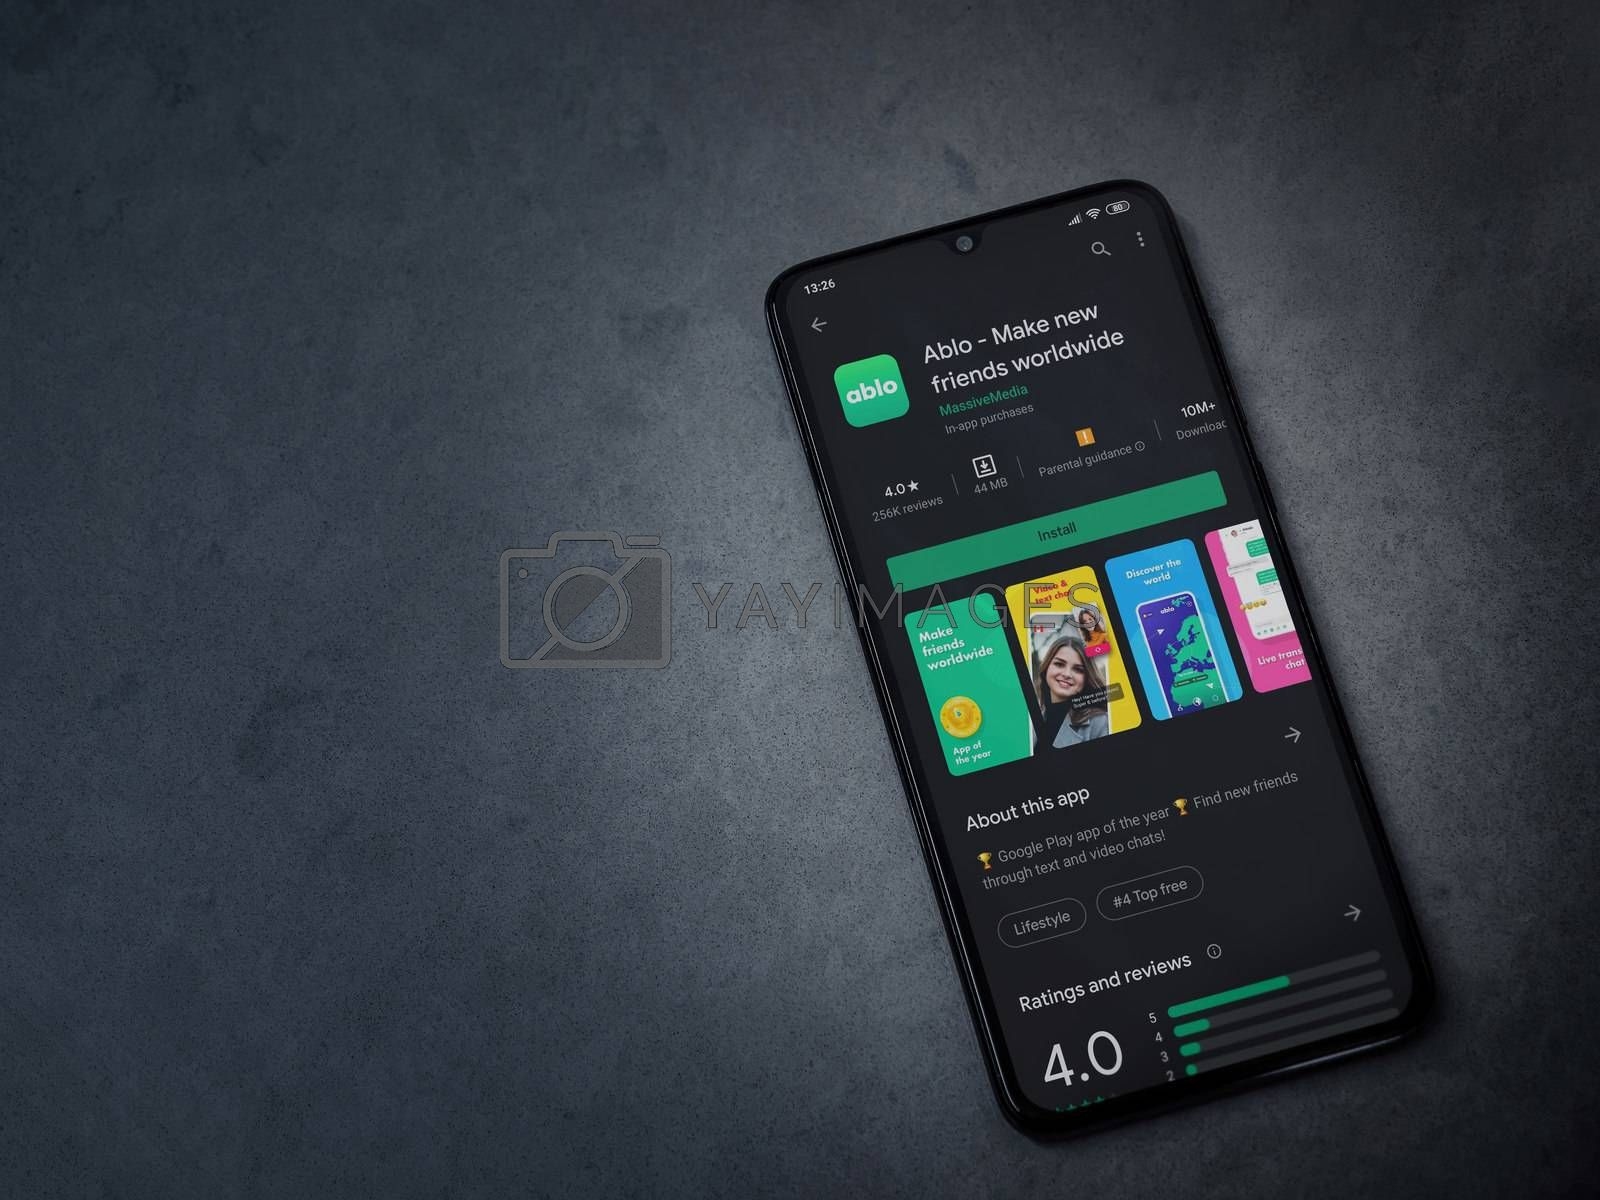 Lod, Israel - July 8, 2020: Ablo app play store page on the display of a black mobile smartphone on dark marble stone background. Top view flat lay with copy space.